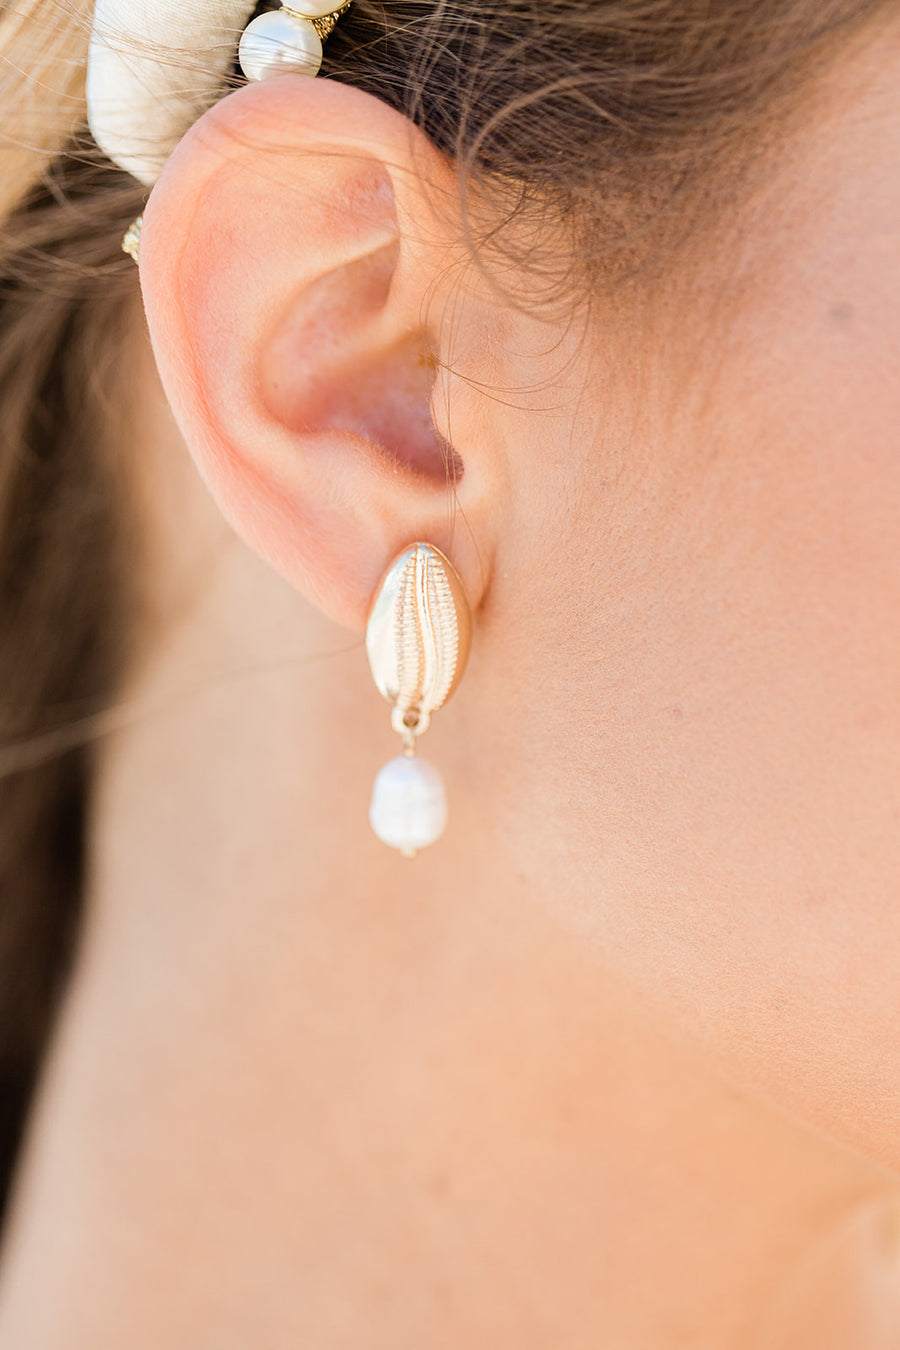 Eleuthera Earrings - The Beach Bride by Chic Parisien, a destination for beach weddings, bachelorettes and honeymoons